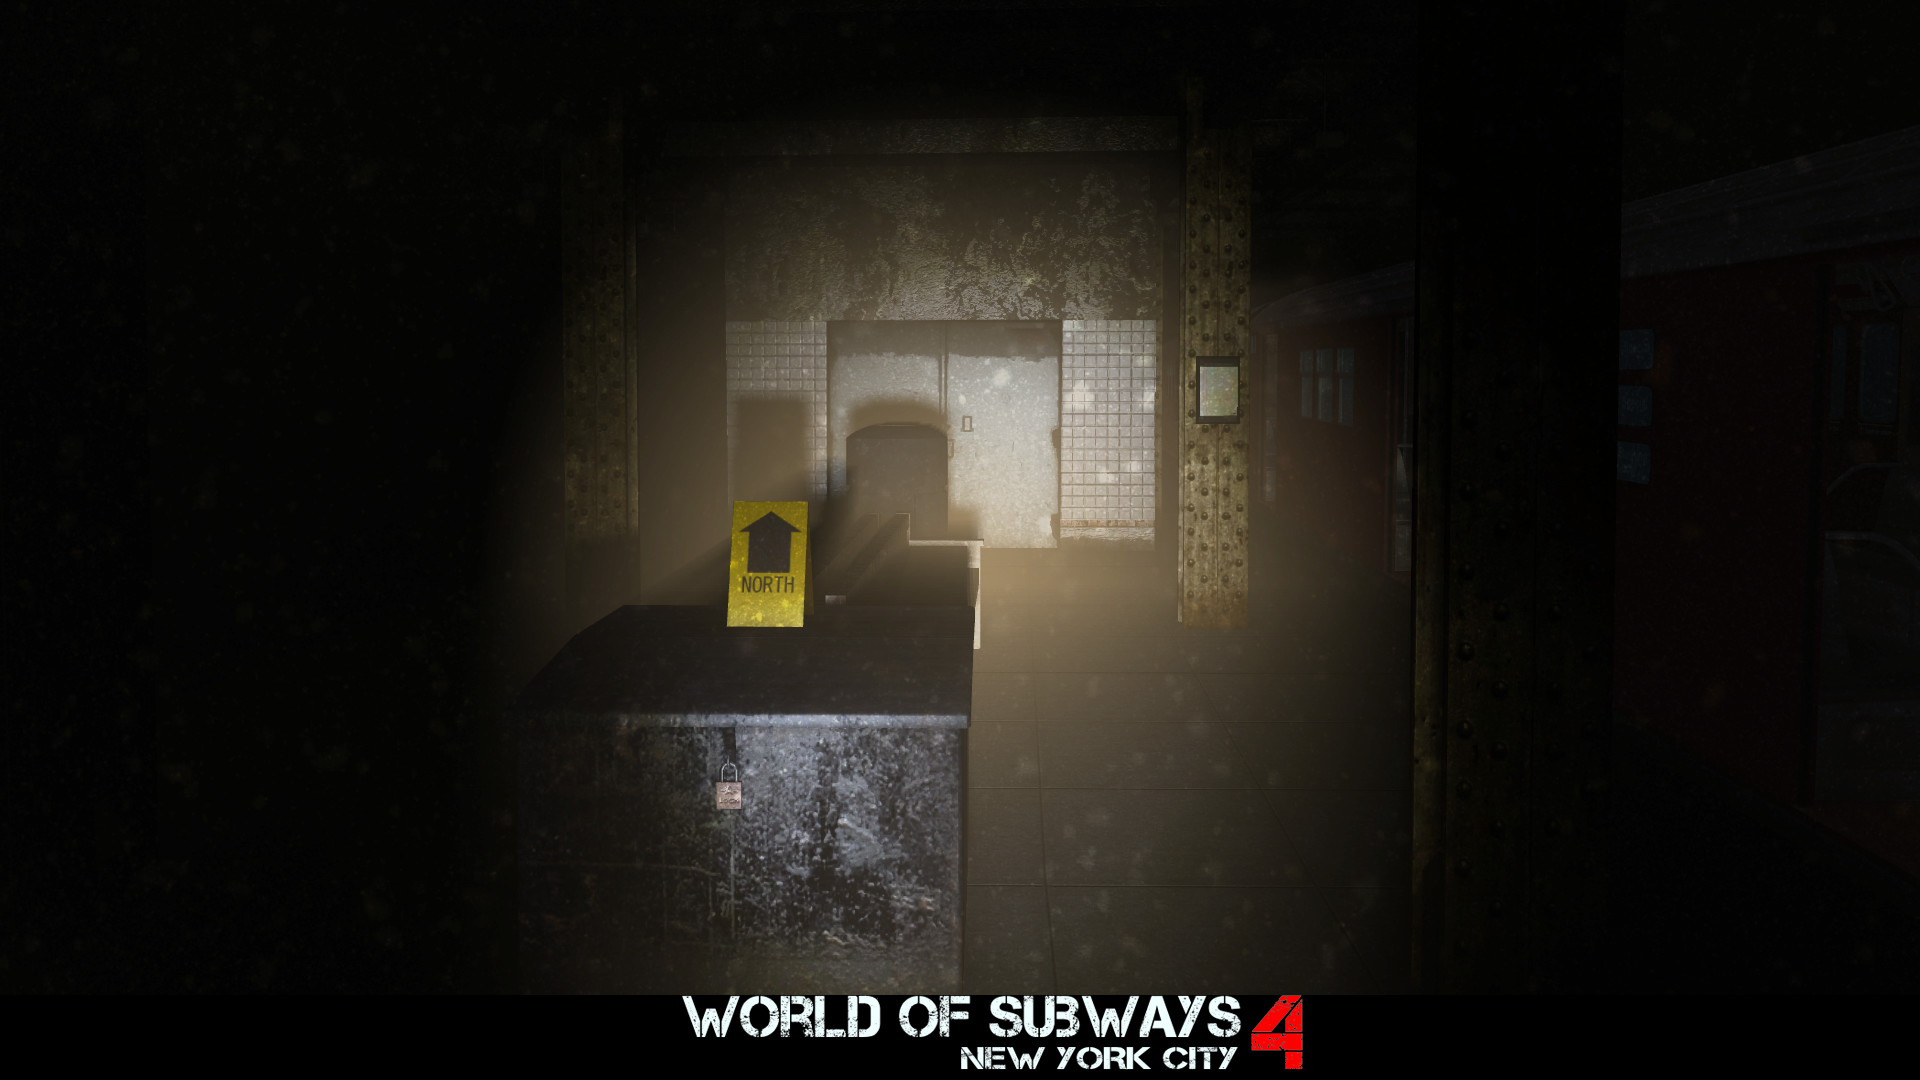 World of Subways 4 – New York Line 7 screenshot2 on PCGamesCDN you can download cracked unlocked full pc version game direct free download with mirrors and torrent.